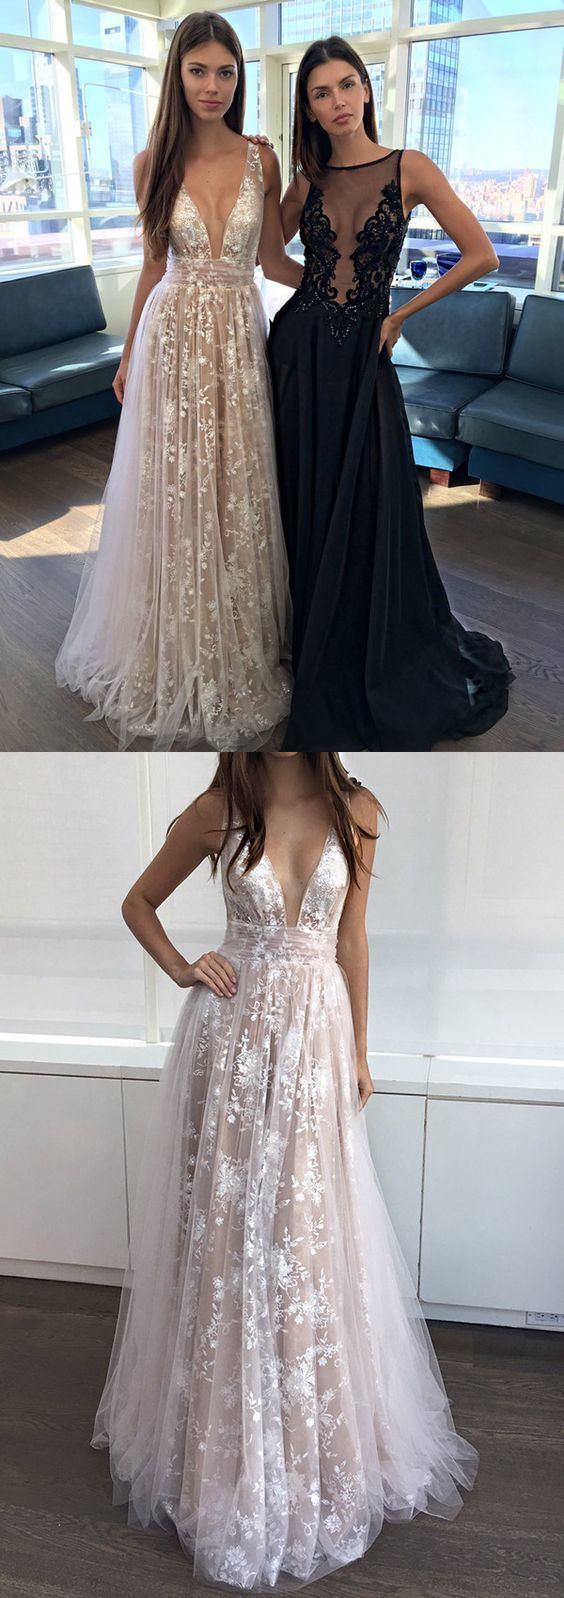 party dresses, prom dresses 2019, dreamy evening gowns, cheap prom party gowns.